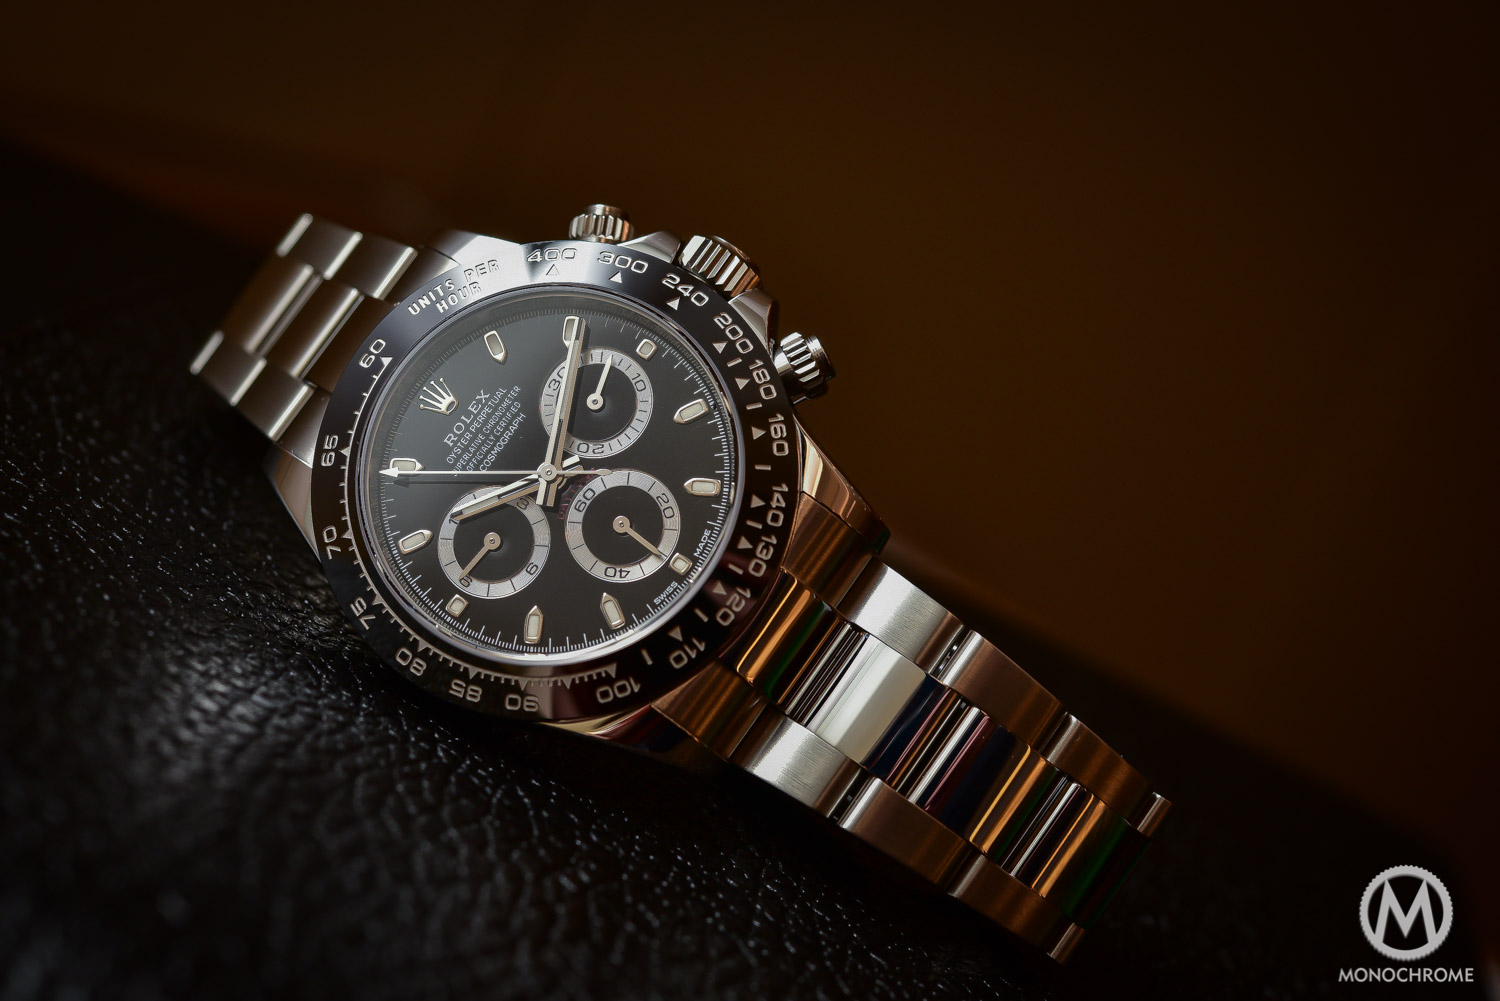 Rolex Daytona 116500LN in steel Cerachrom ceramic black bezel - 9